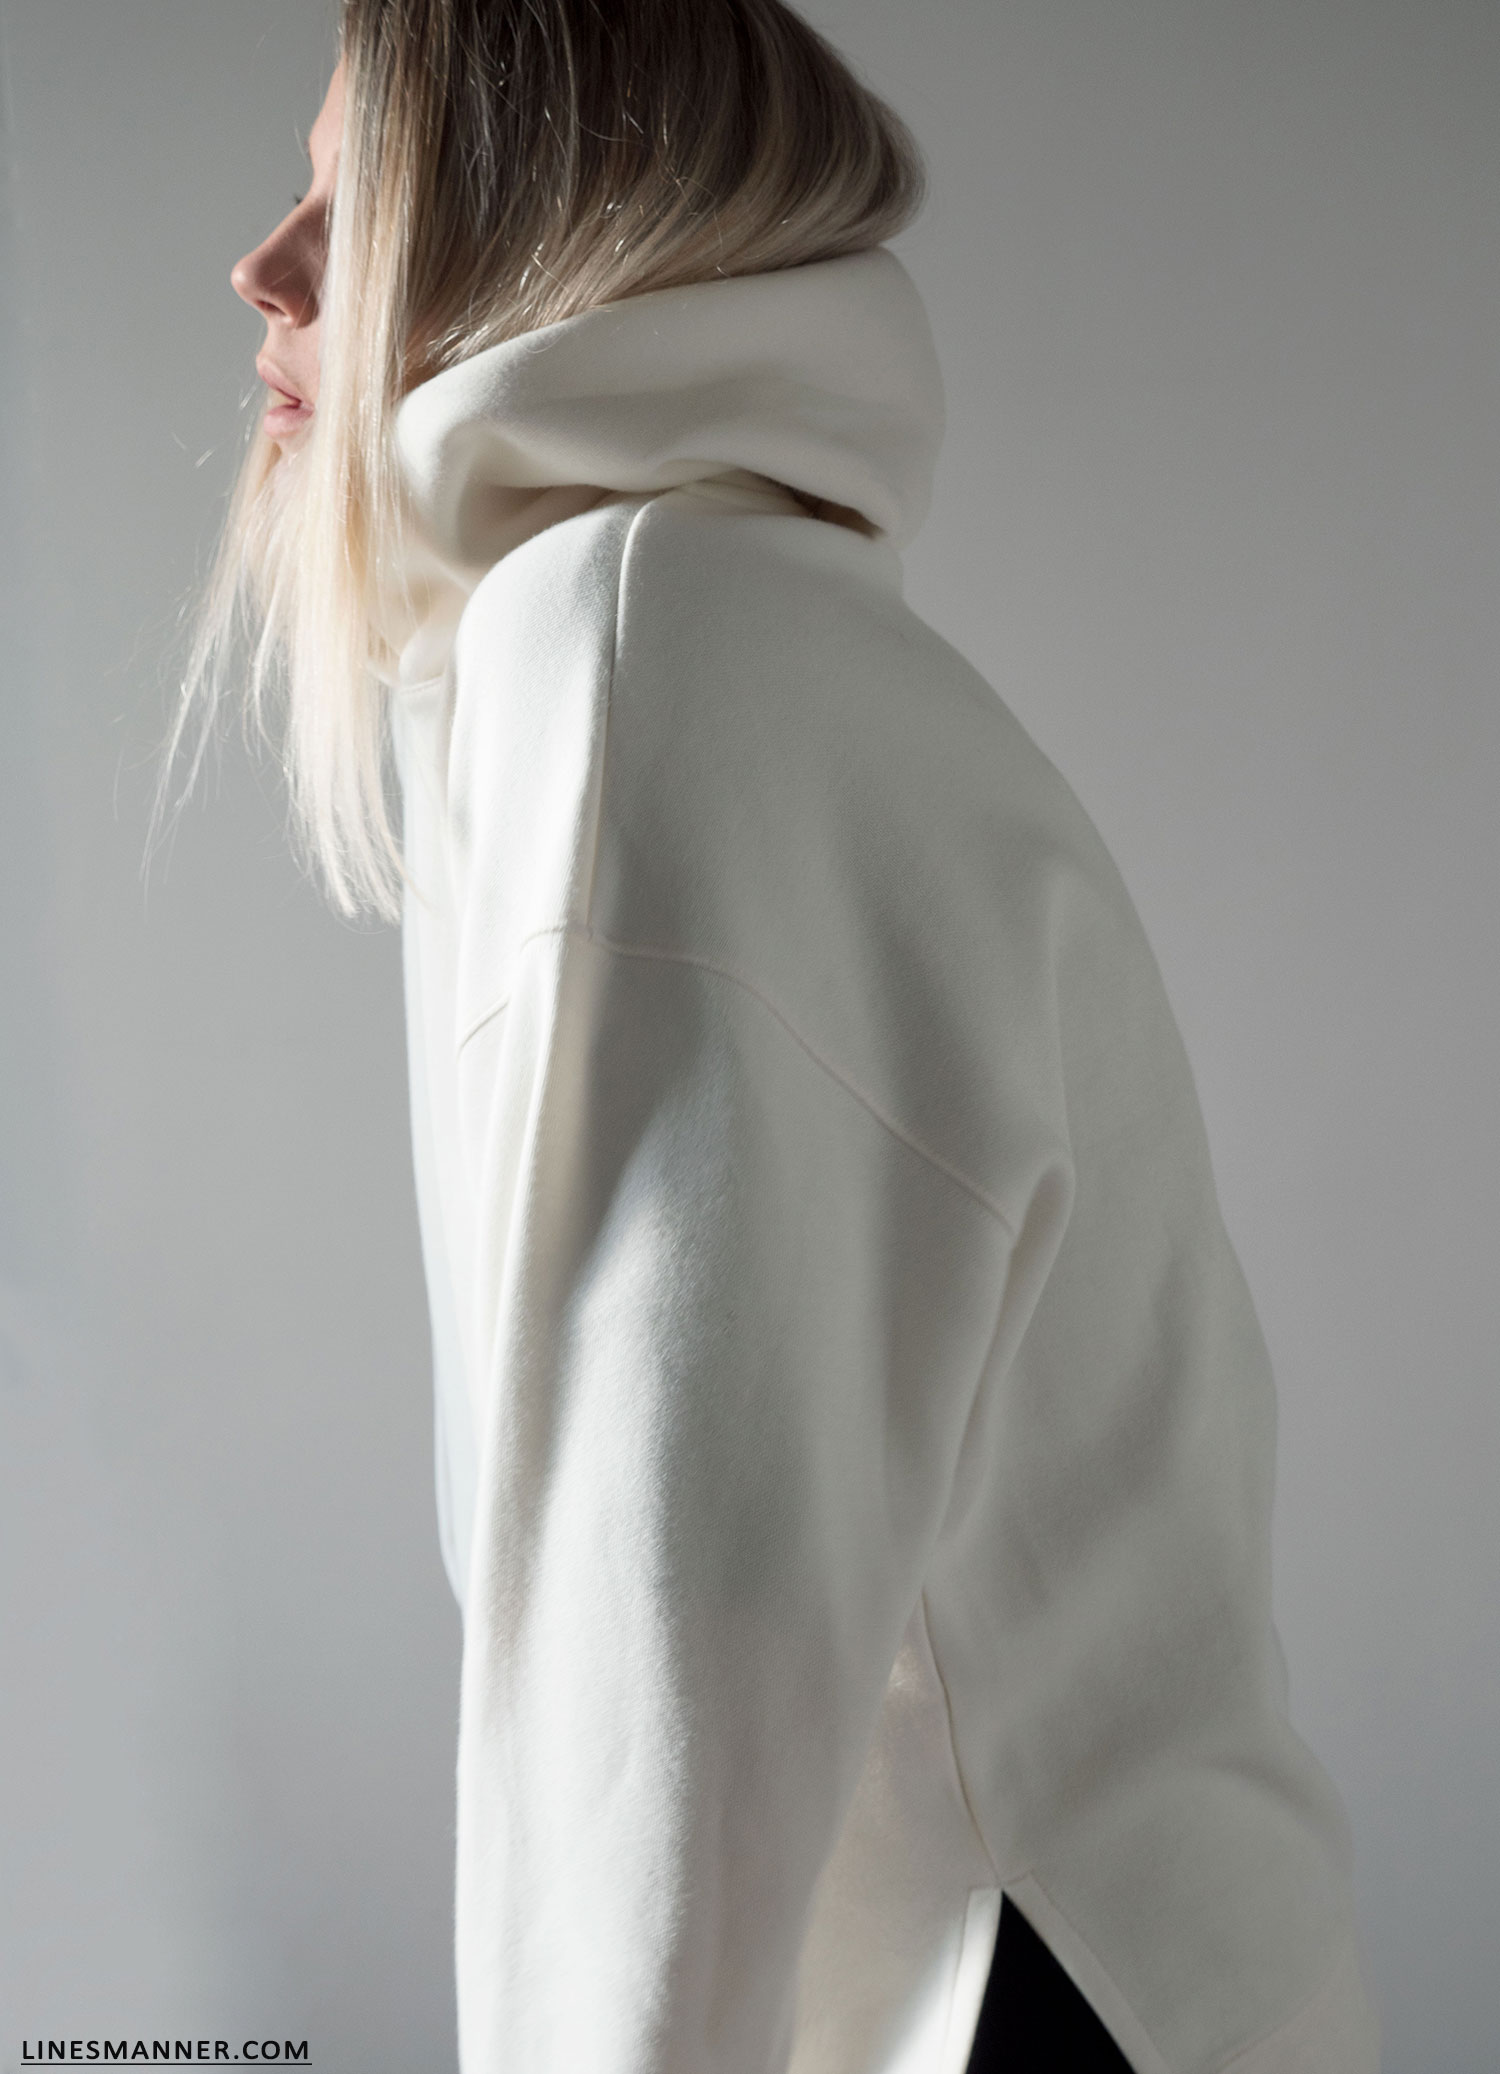 Lines_Manner-Hoodie-Minimal_Outfit-Maxi_Dress-Layering-Effortless-Sporty_Chic-Quality-Uniqlo-3